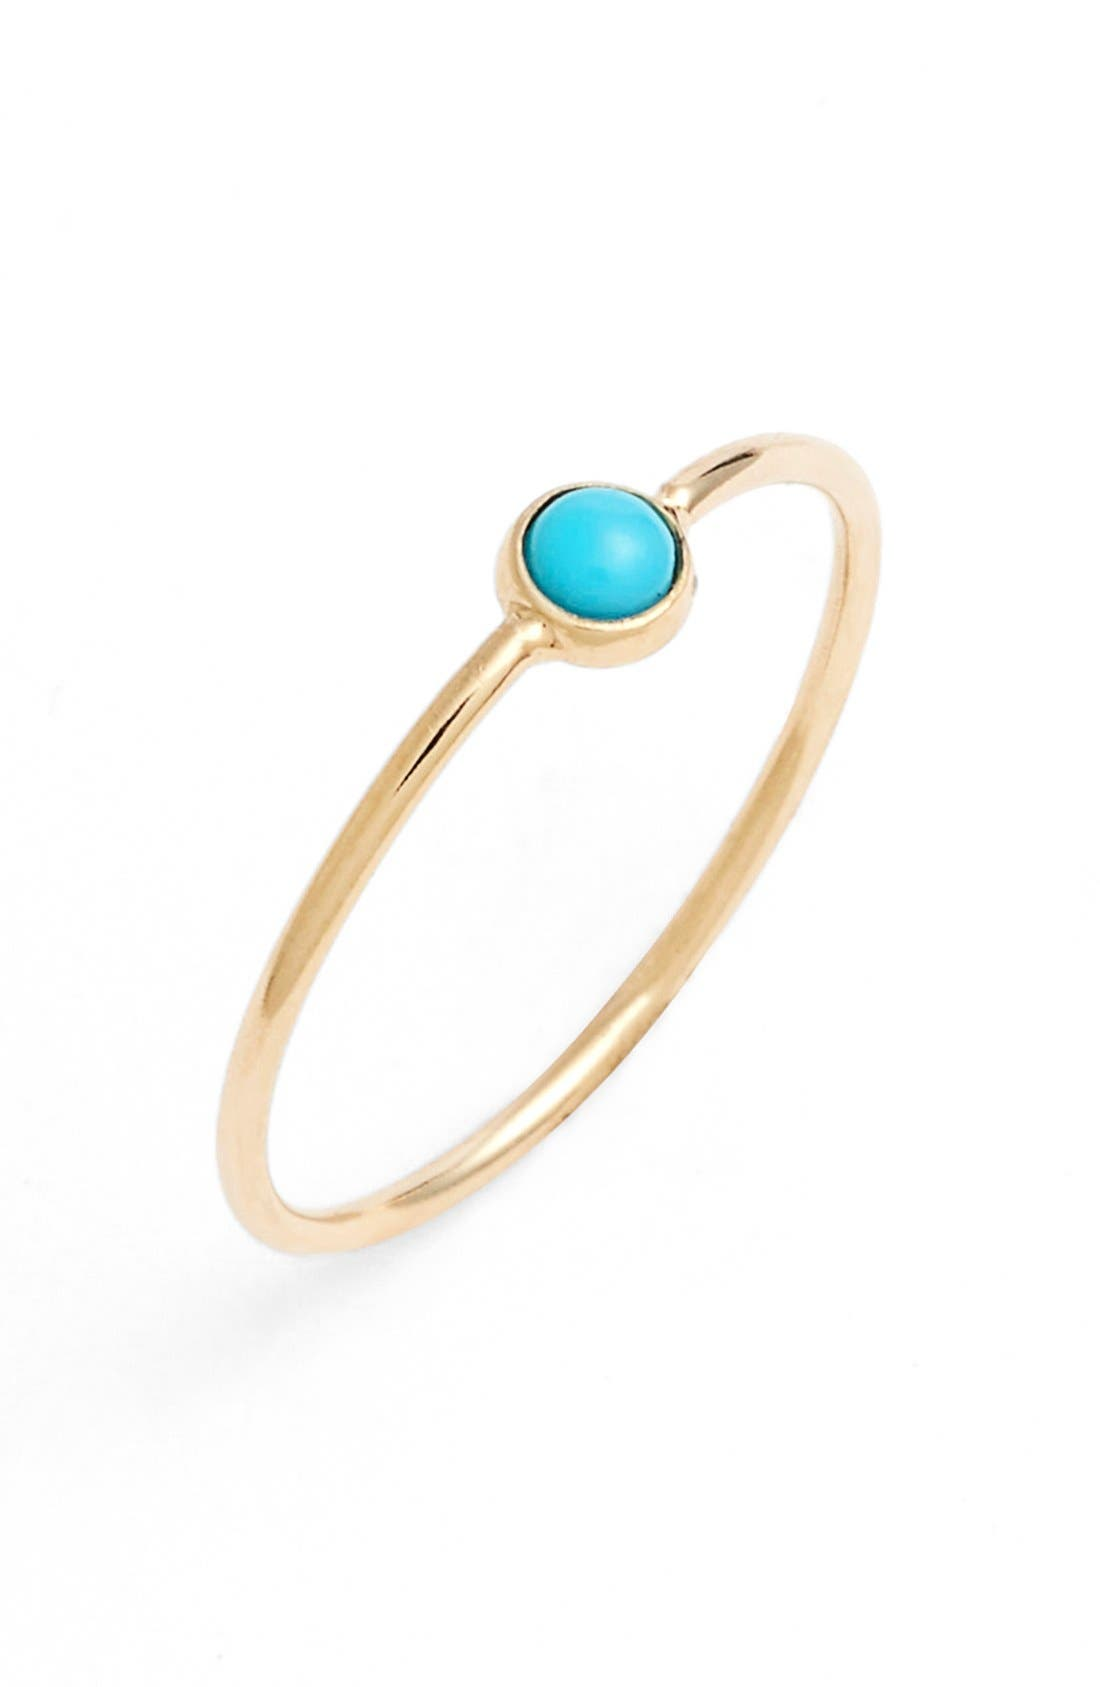 ZOË CHICCO, Turquoise Stacking Ring, Main thumbnail 1, color, TURQUOISE